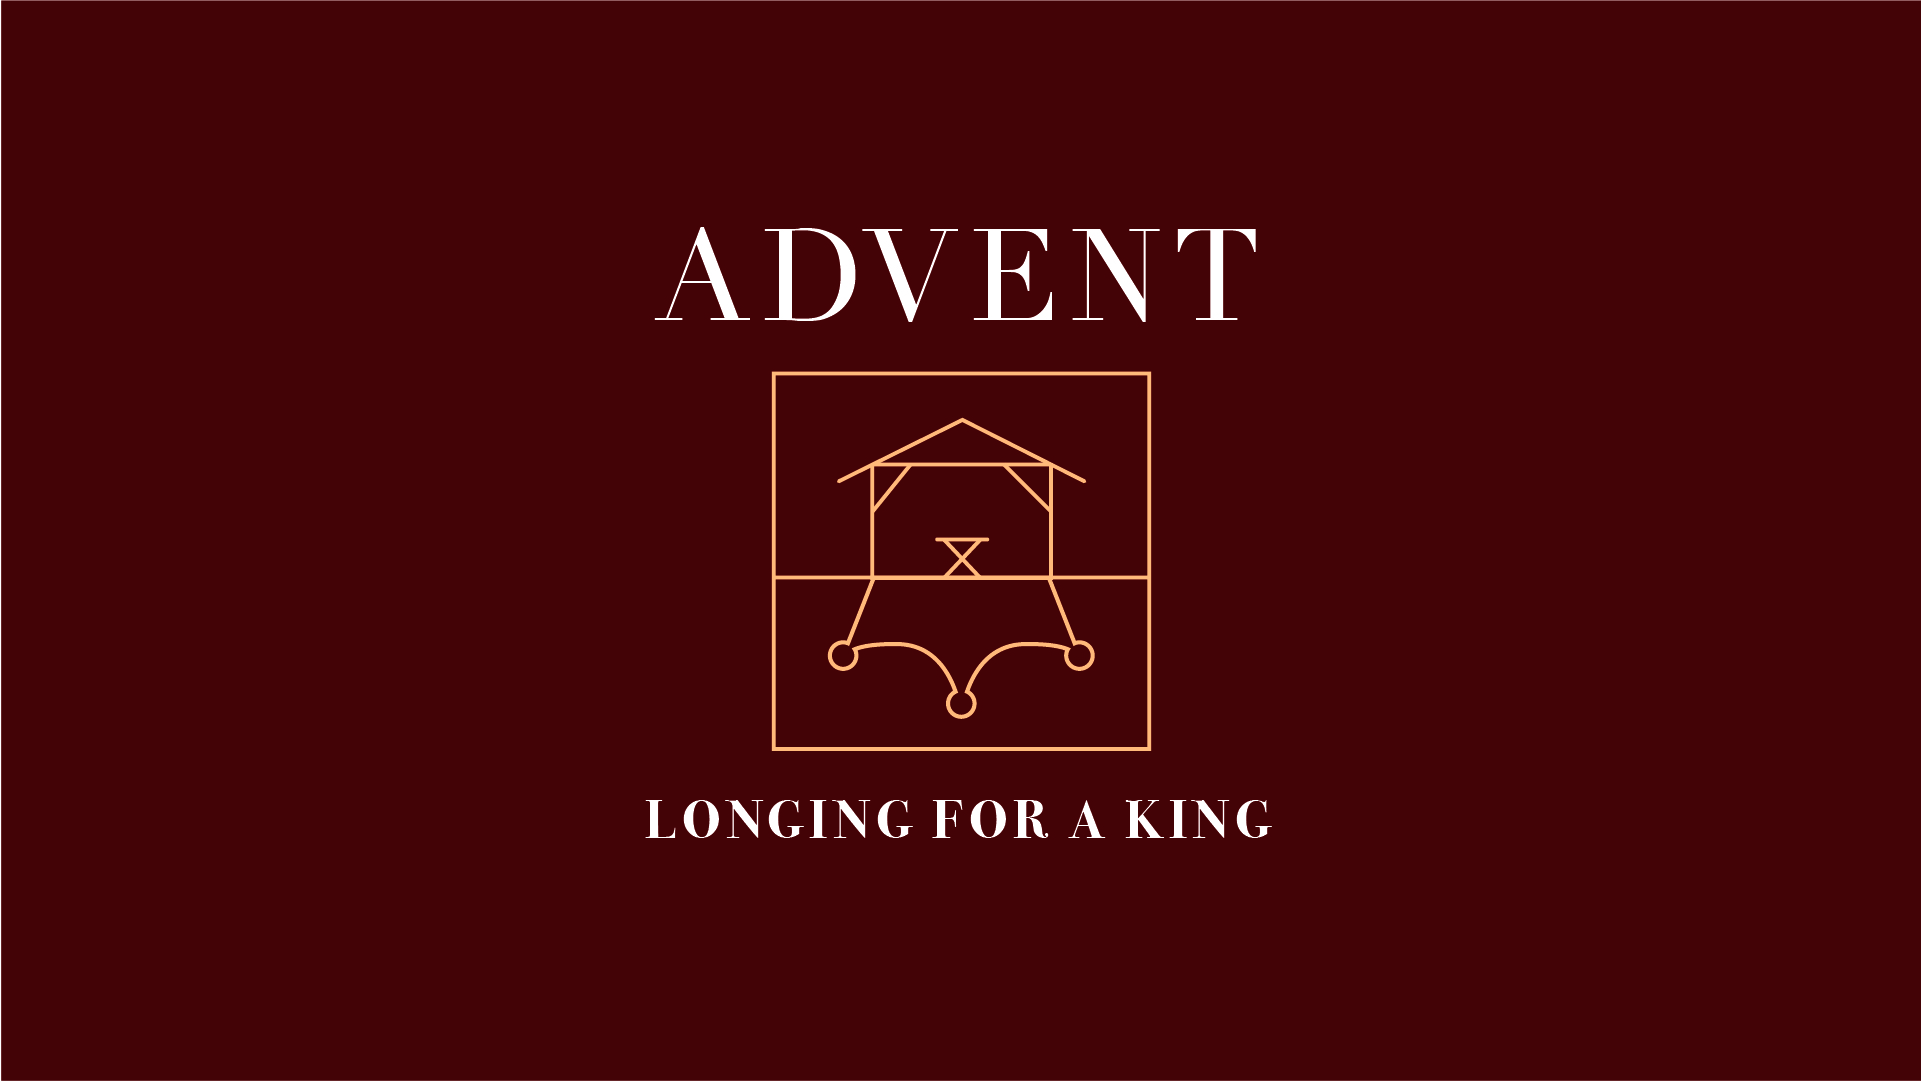 Advent 2018 - Longing for a King